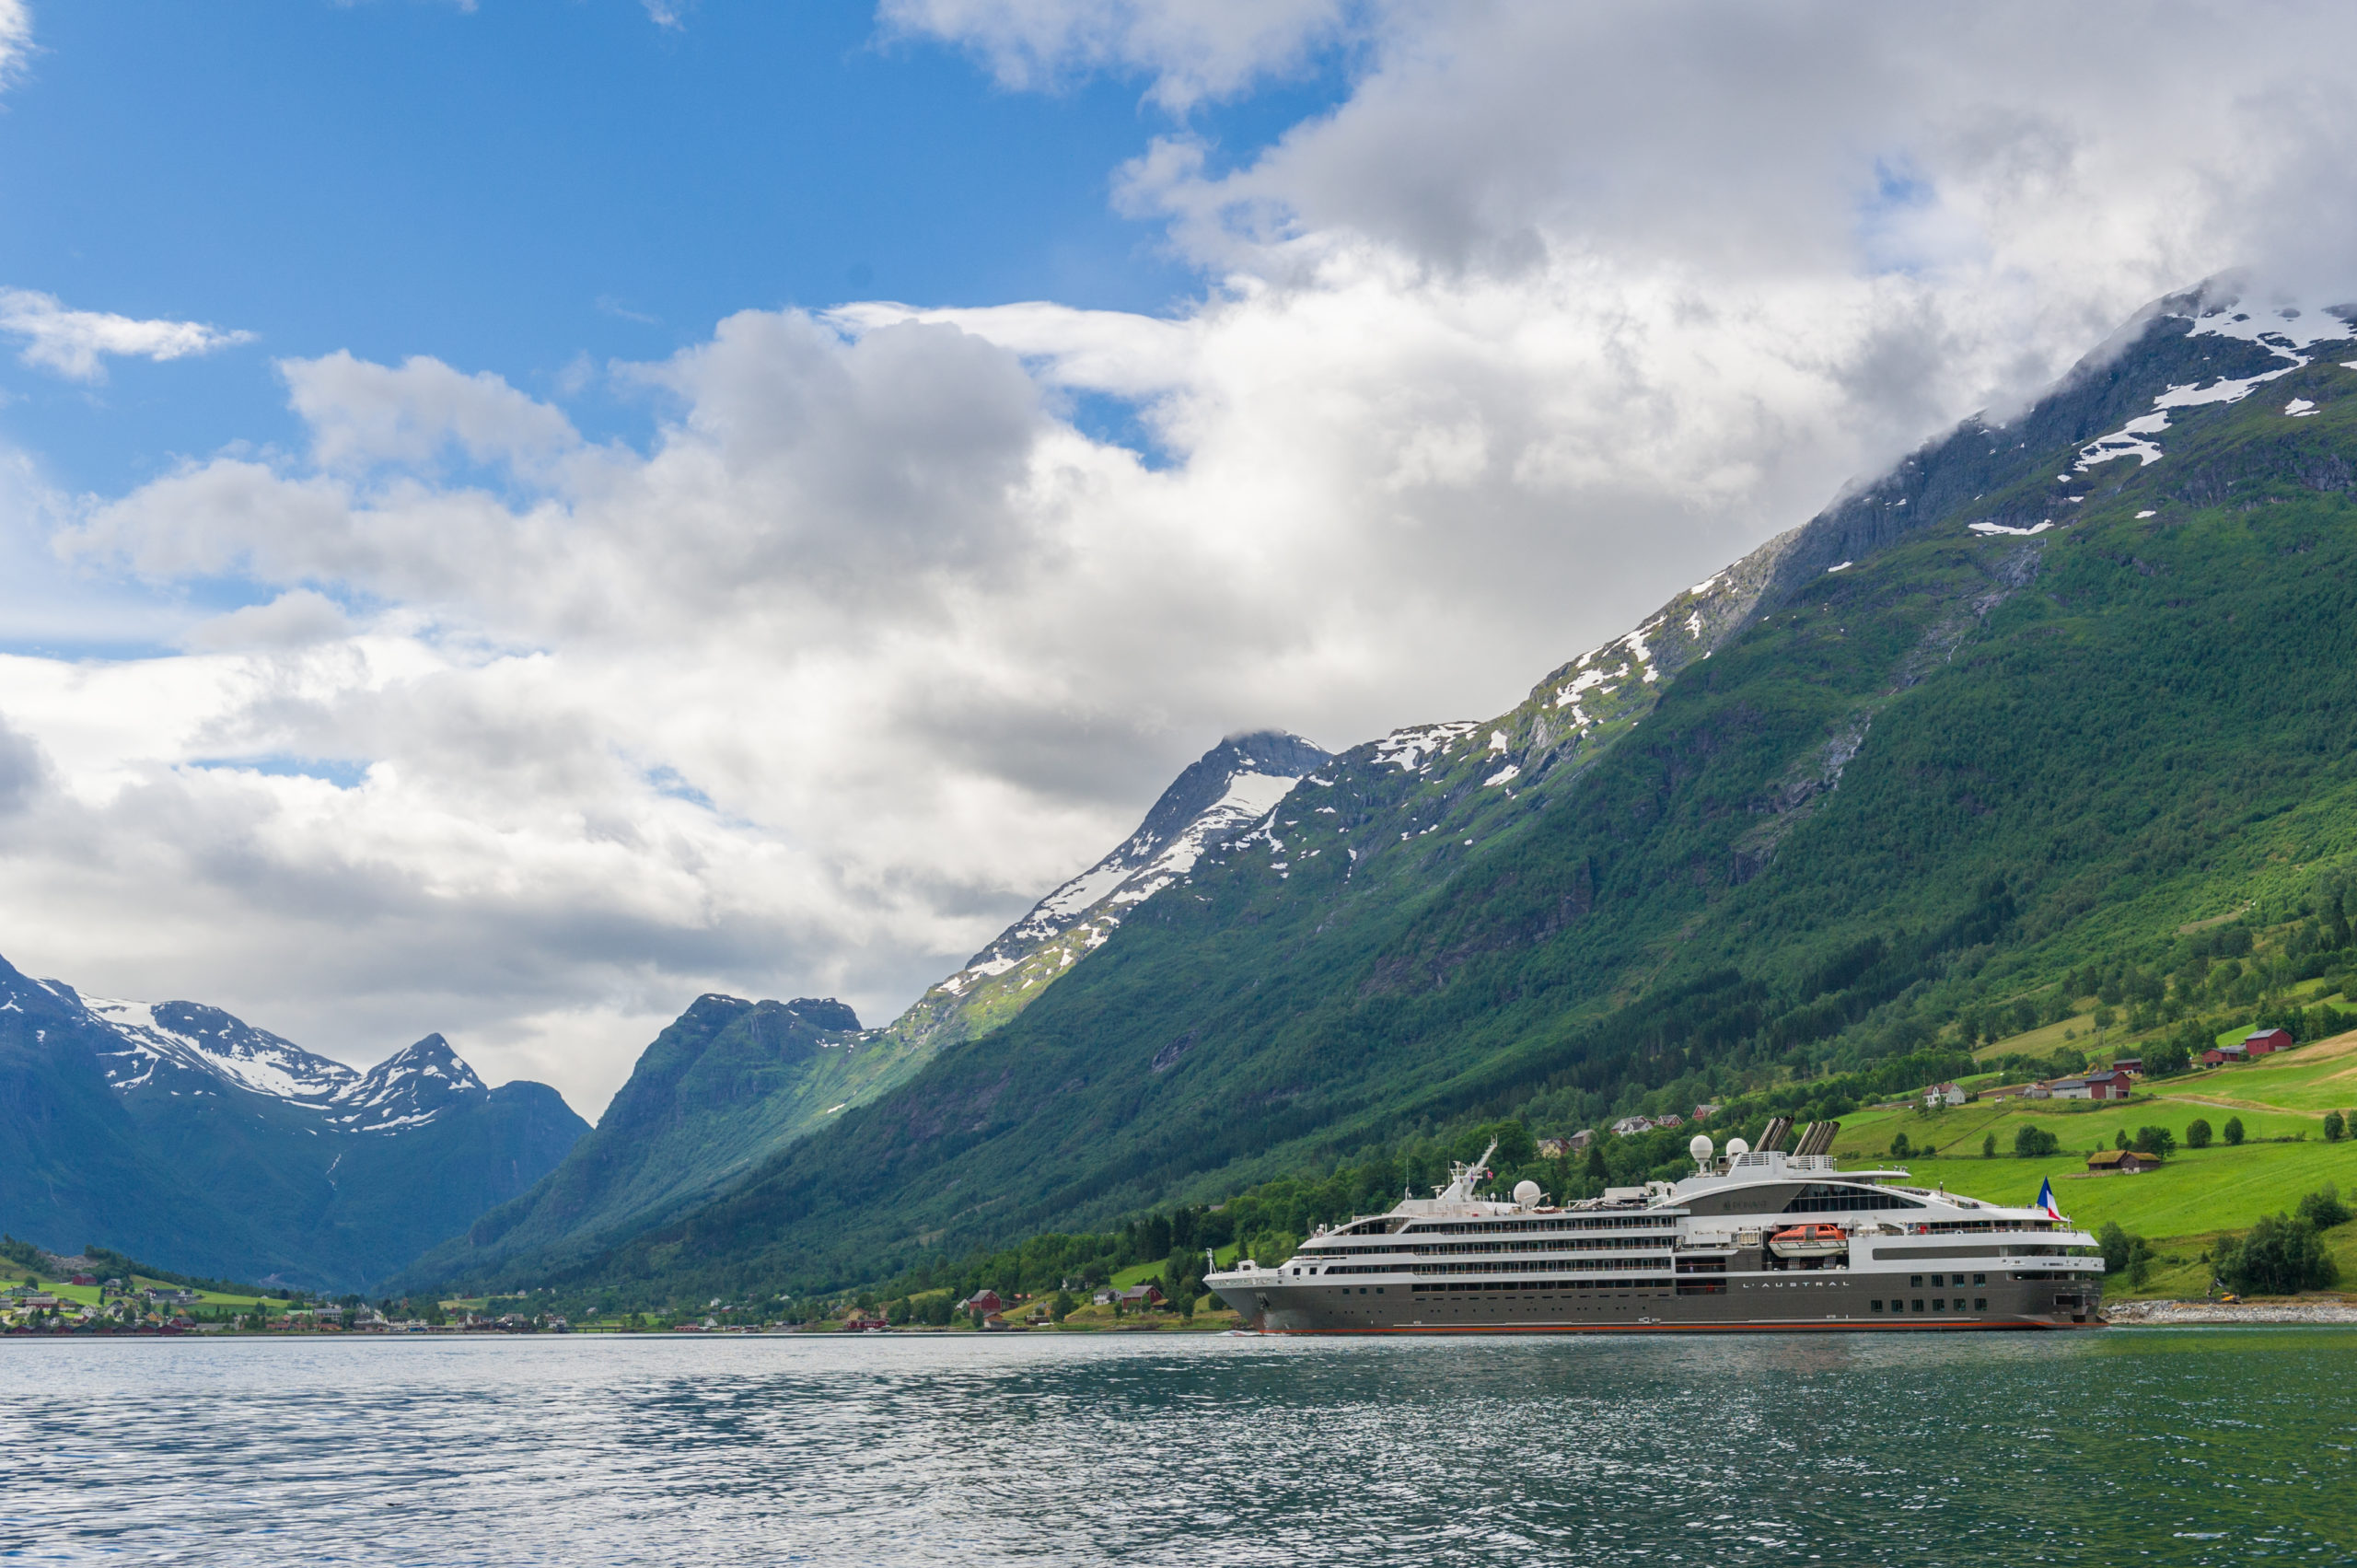 The majestic Norwegian fjords as seen from a Ponant Cruise ship